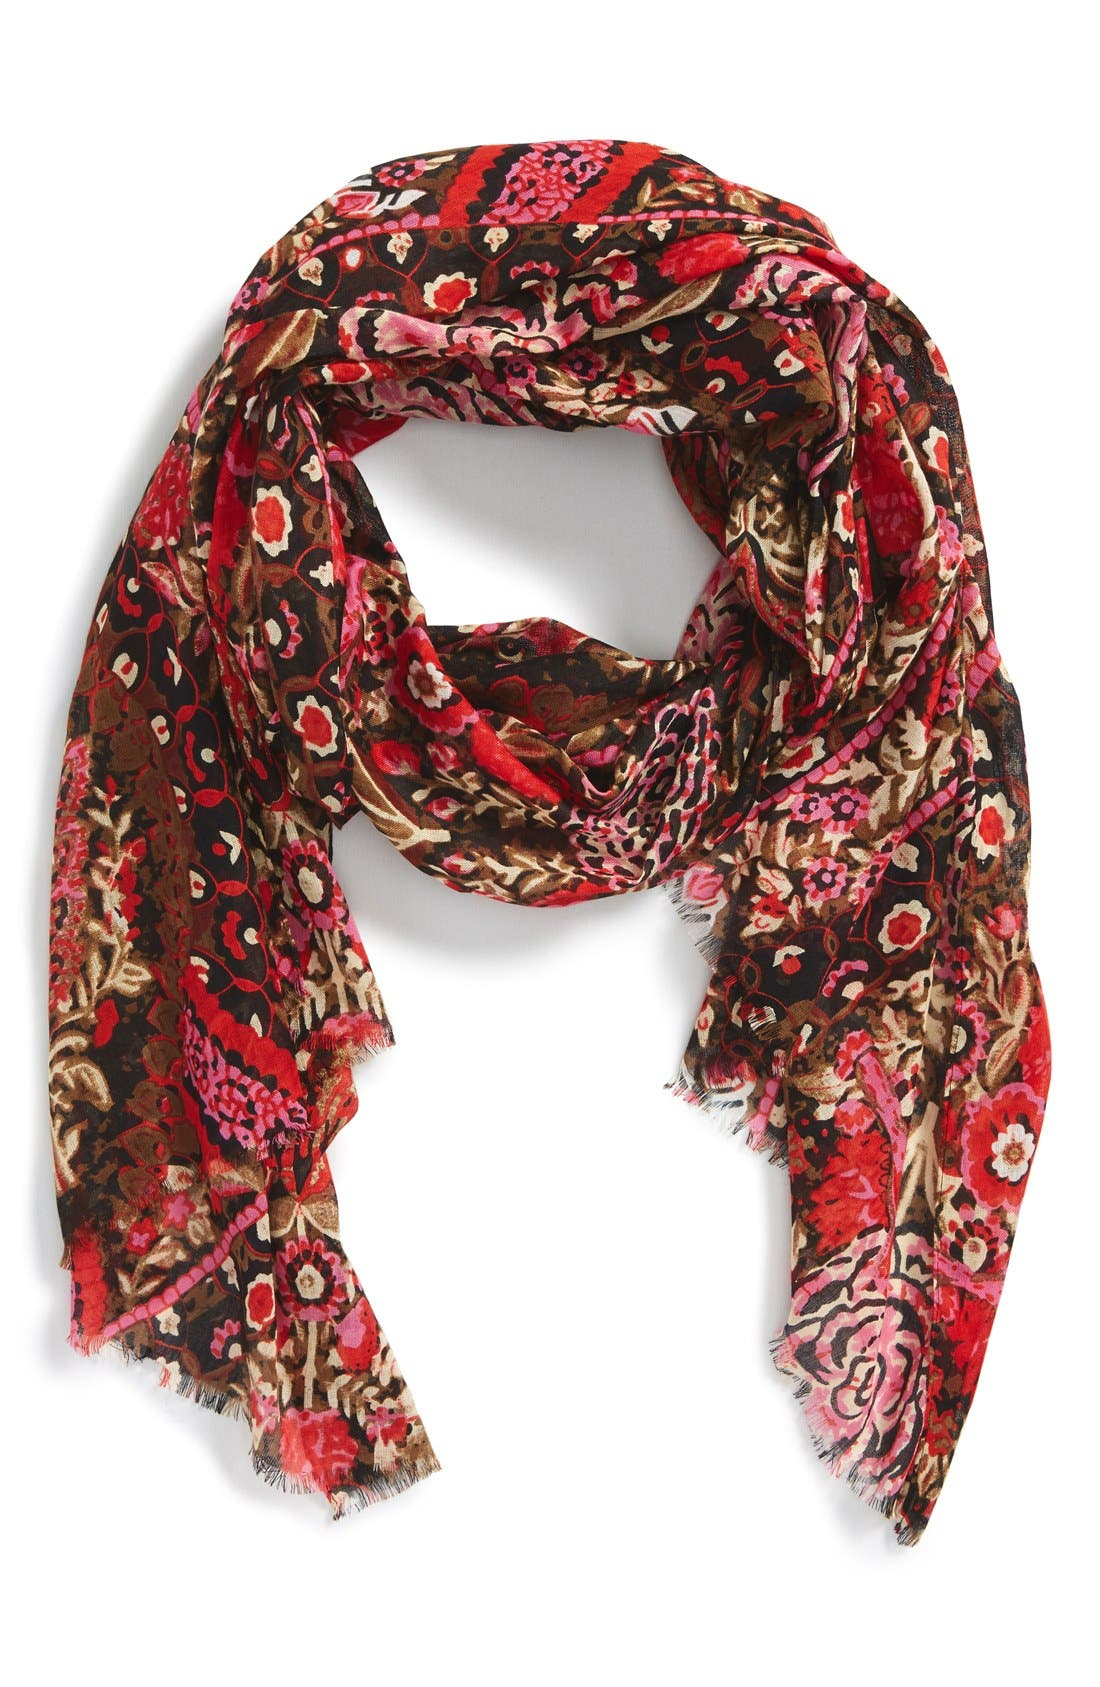 Alternate Image 1 Selected - Lulla Collection by Bindya 'Folklore' Print Scarf